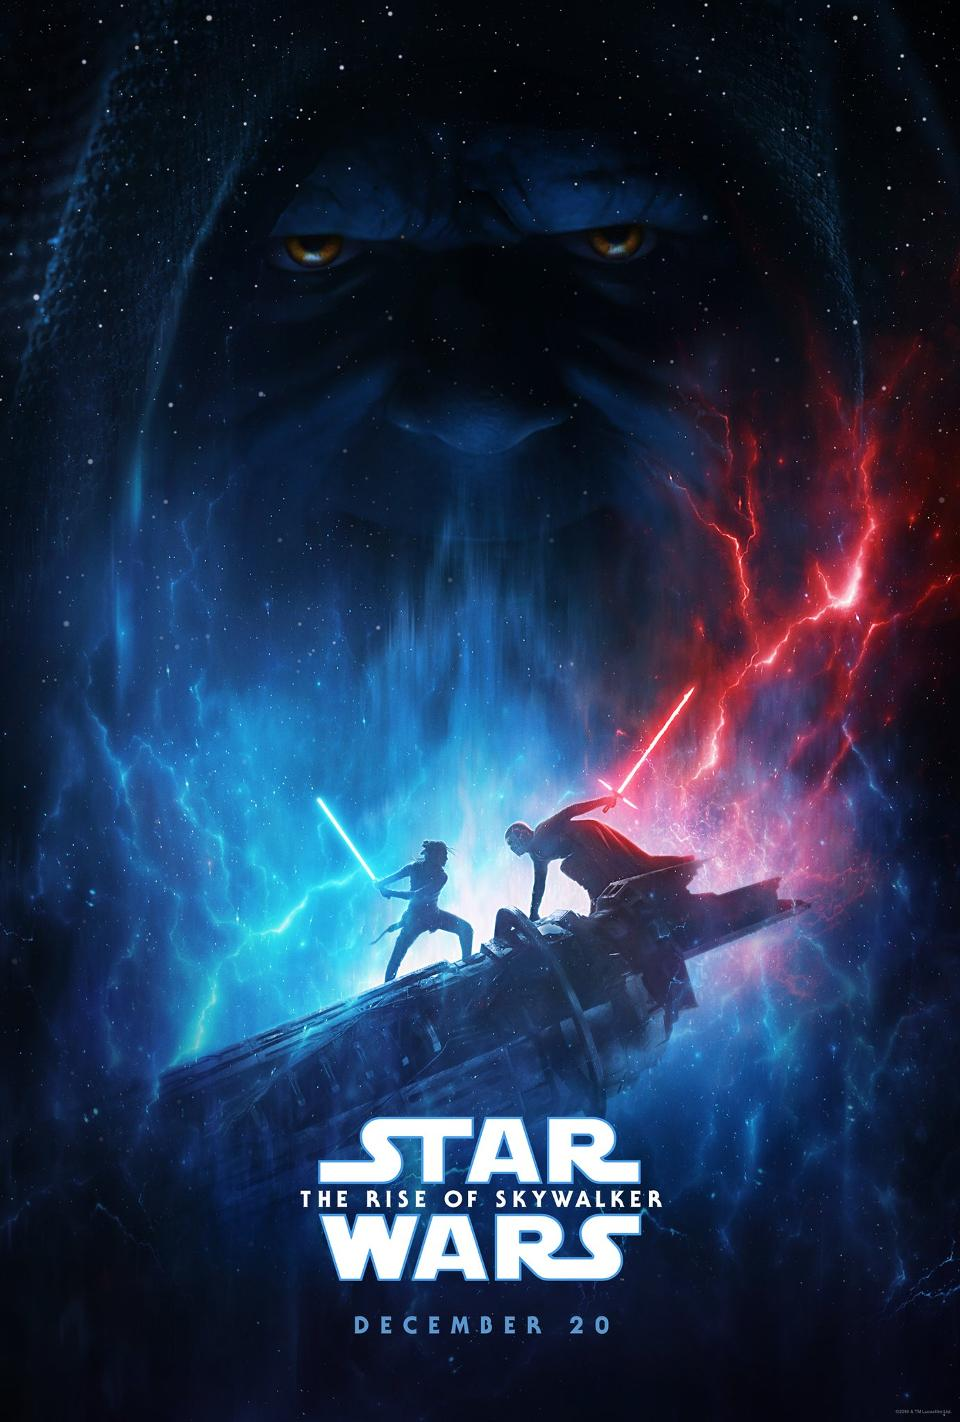 The Star Wars: Rise of Skywalker poster as seen on social media and in movie theaters. The poster release caused fans, both devoted and casual, much excitement. The poster depicts a lightsaber battle between the main protagonist in the film, Rey, and the main villain Kylo Ren. In the background of the poster is a face any Star Wars fan will know: Emperor Palpatine.